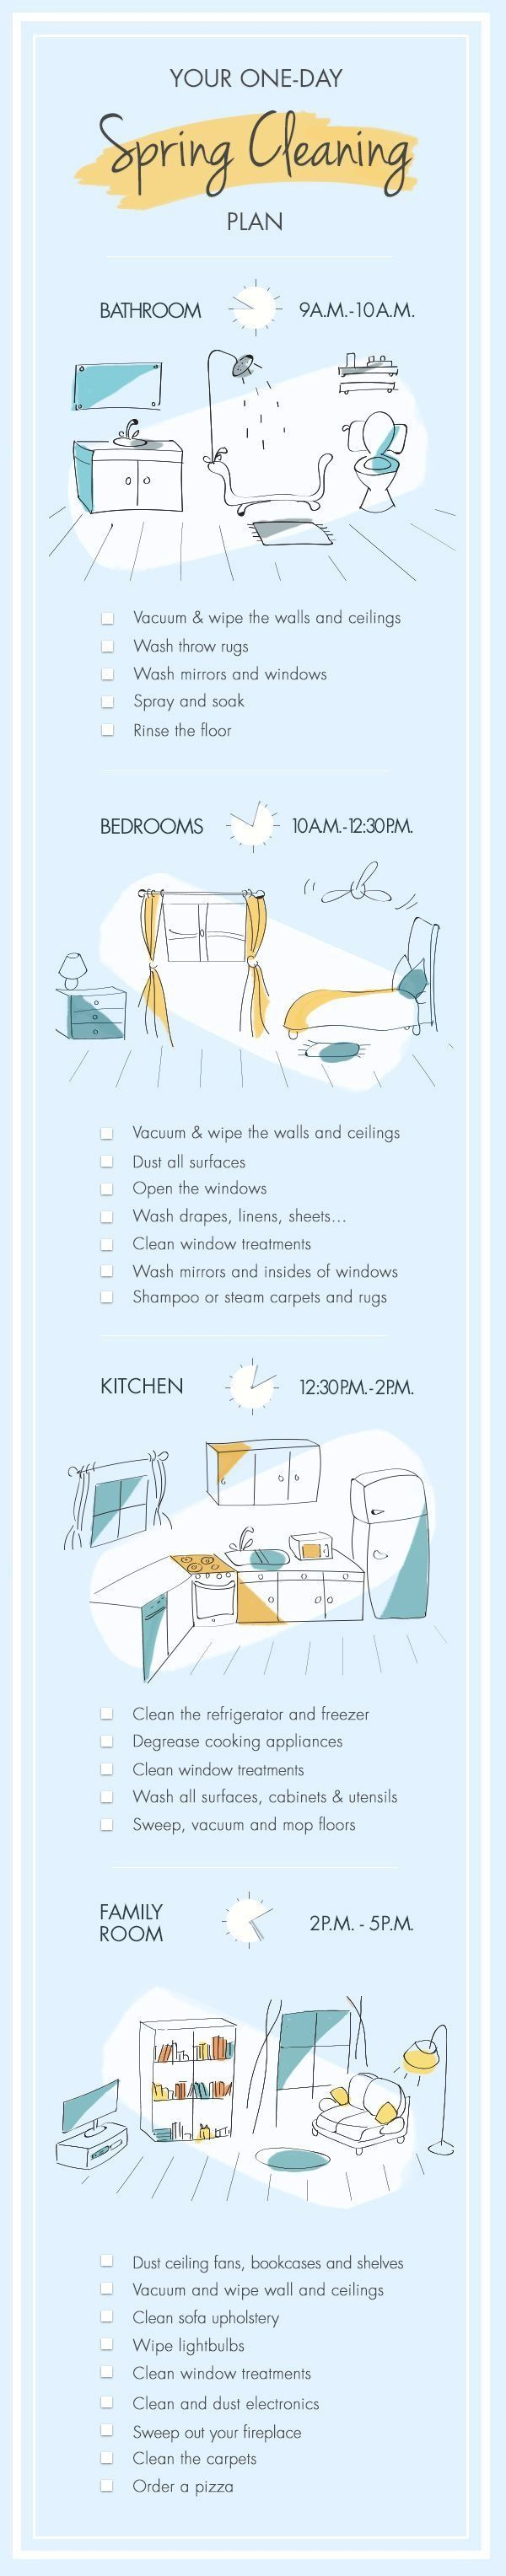 10 x 7 küchendesign  best cleaning routines images on pinterest  households cleaning